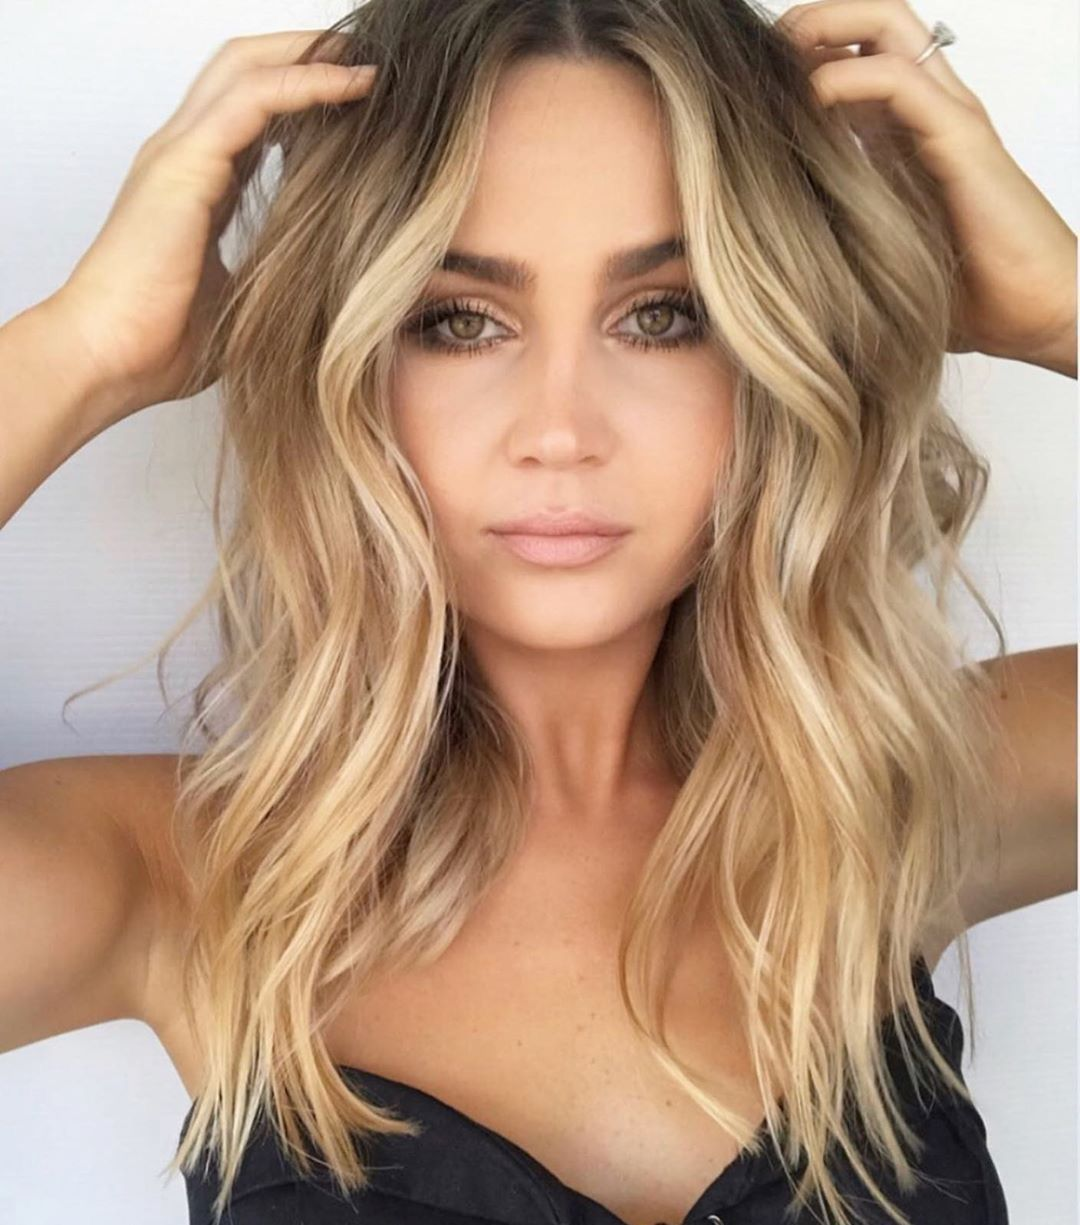 25 Slimming Hairstyles For Round Faces 2020 Ultimate Hair Guide In 2020 Medium Hair Styles Hairstyles For Round Faces Hair Styles